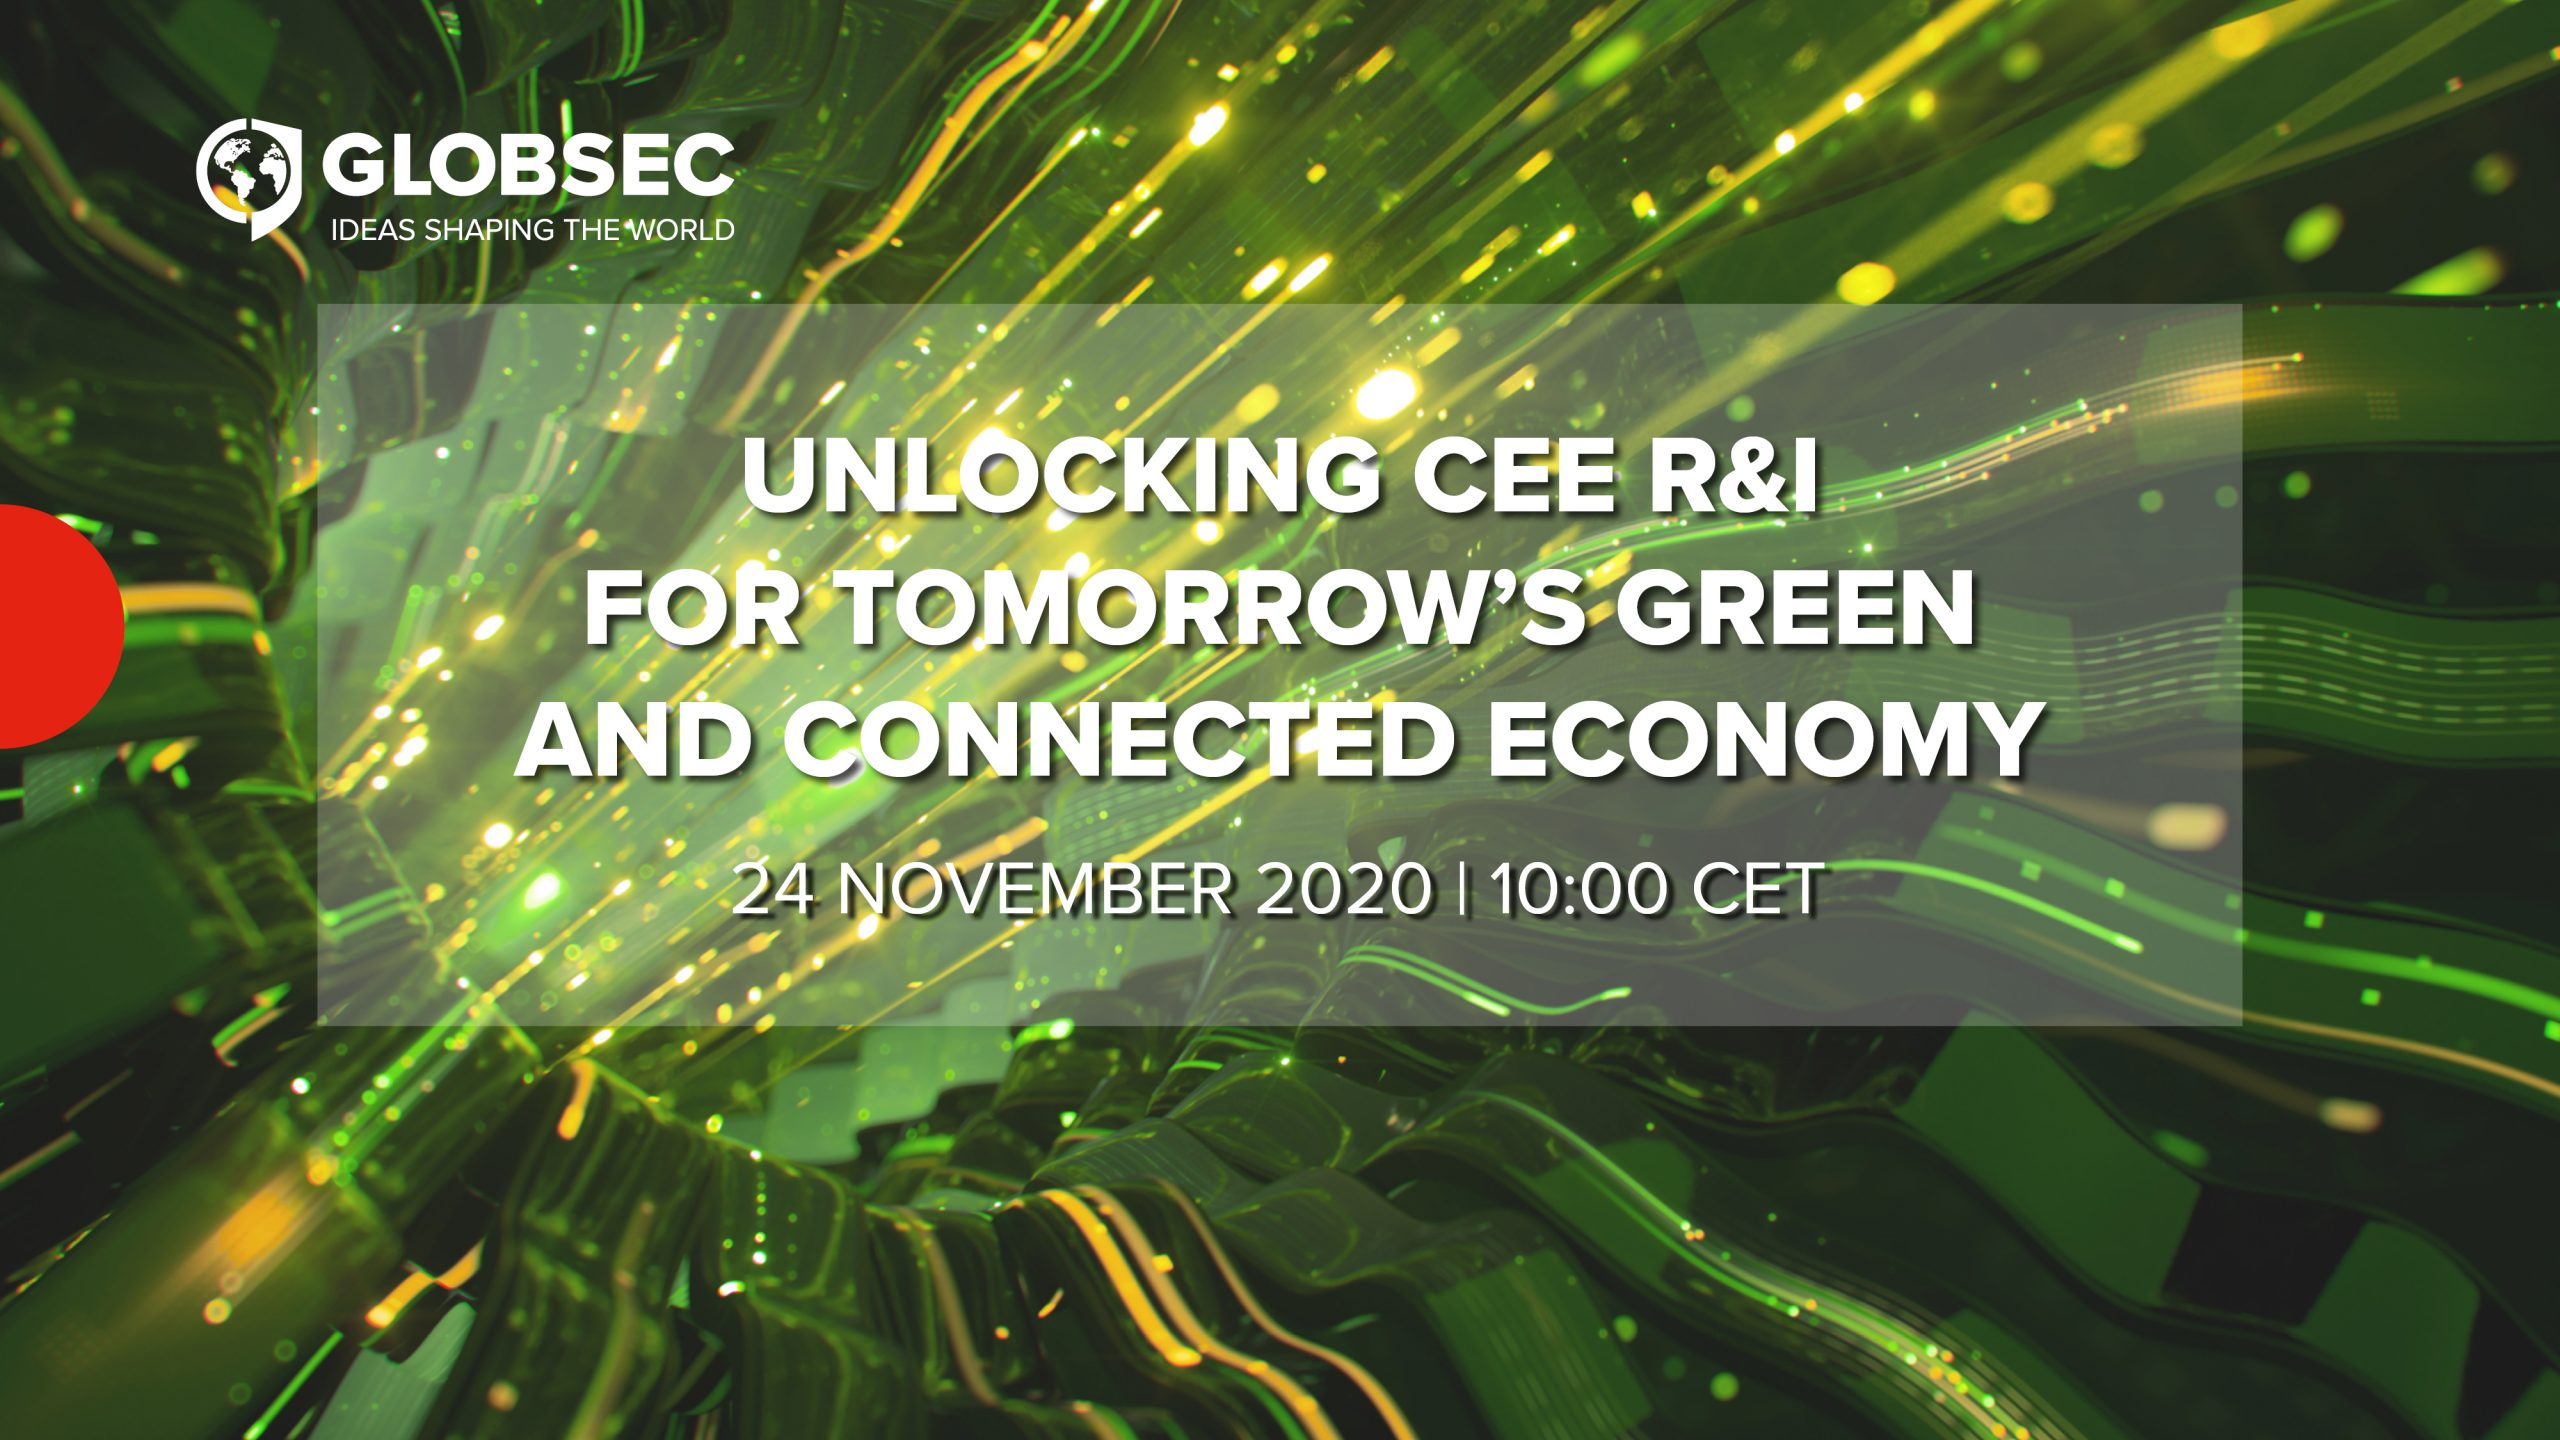 Unlocking CEE R&I for Tomorrow's Green and Connected Economy